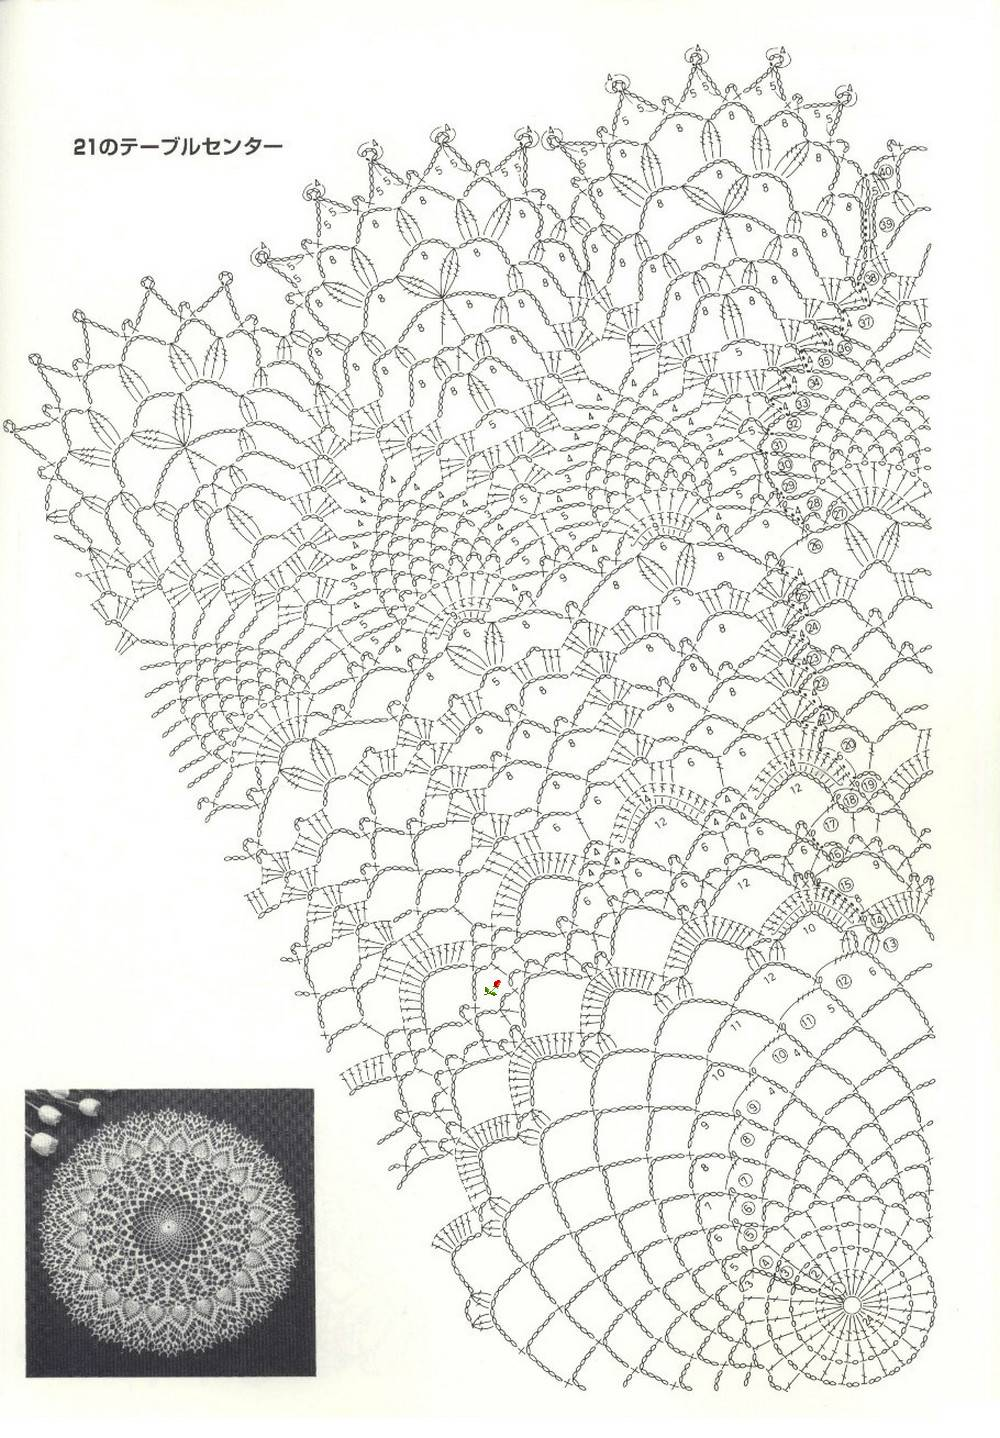 Crochet Doily Lace Free Pattern Diagram ⋆ Crochet Kingdom